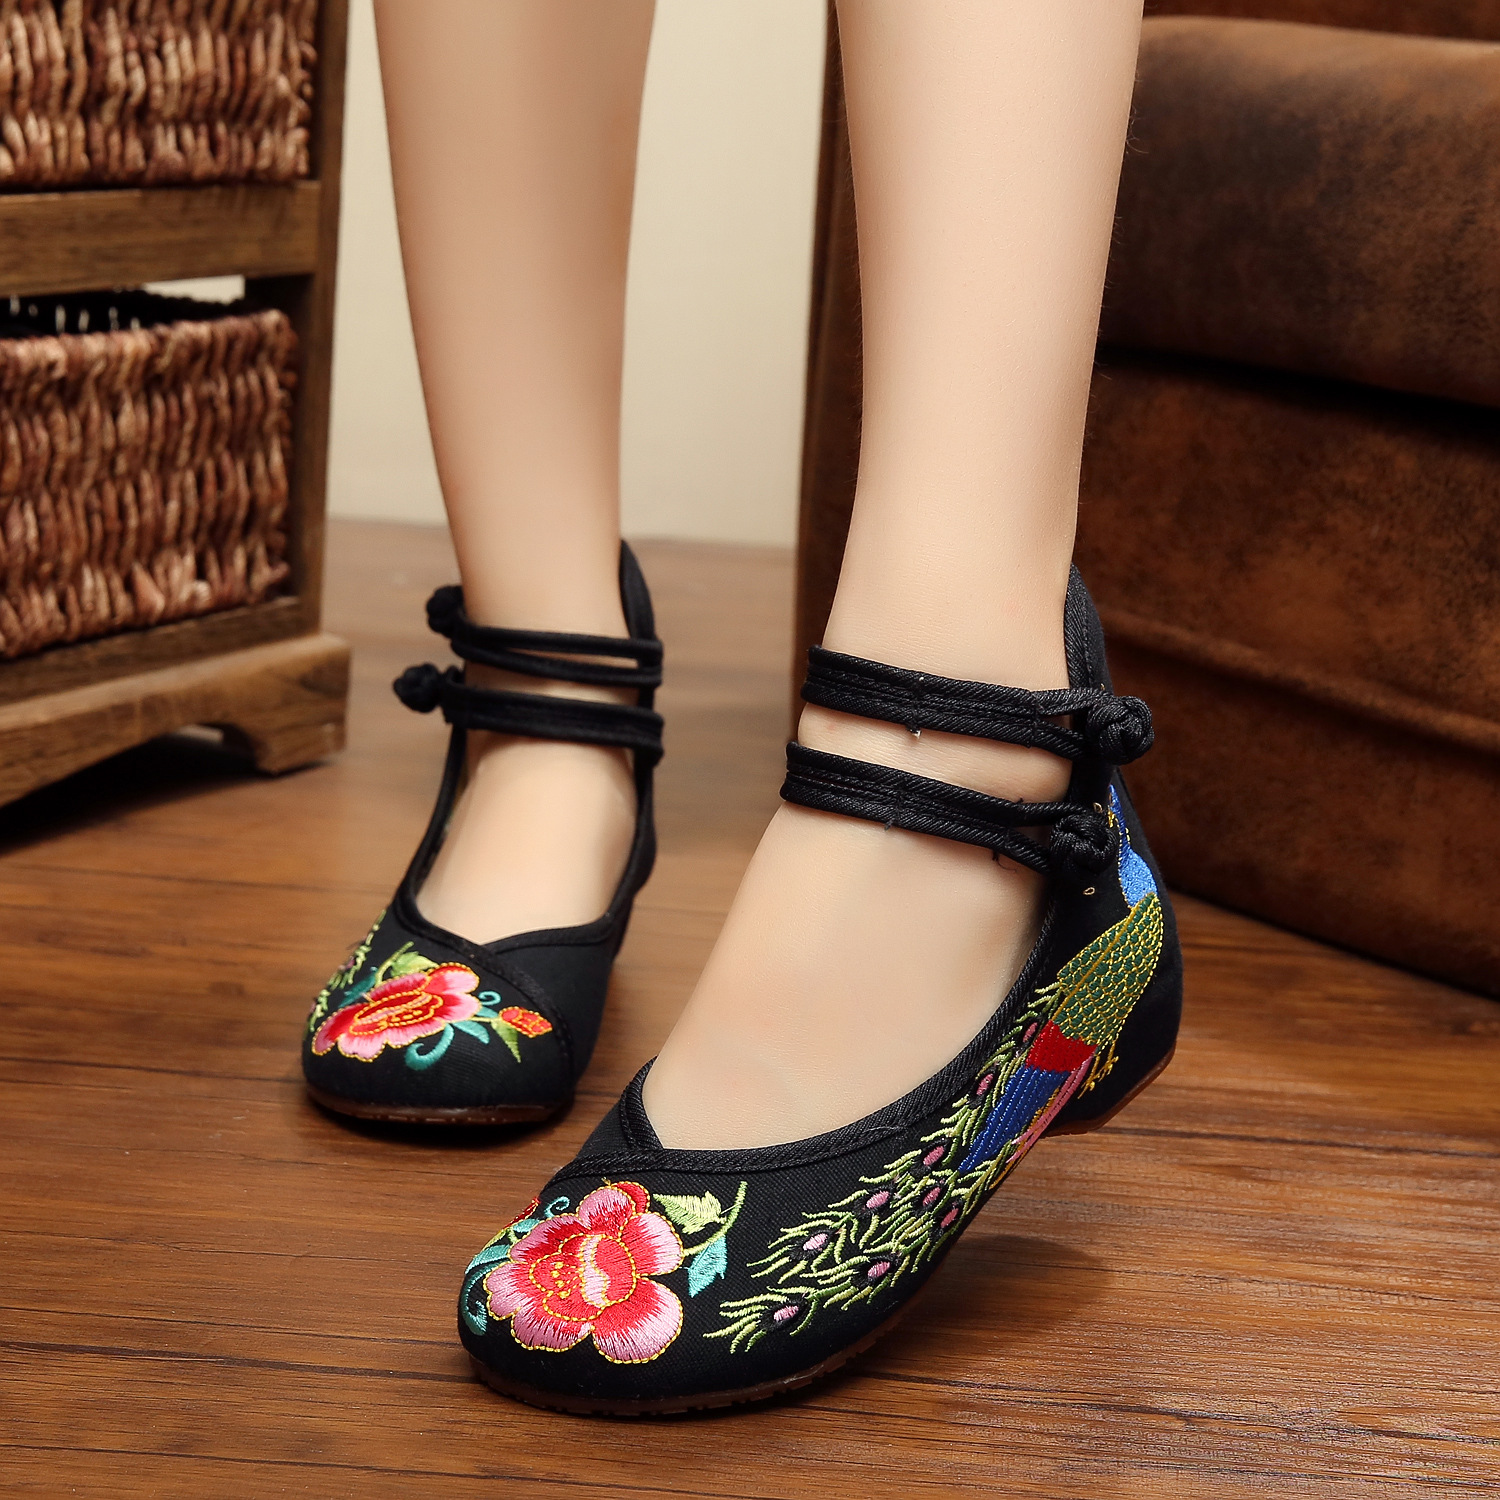 2017 Spring New Black Low heels flower embroidery fashion flats shoes for women free shipping womens flats dance shoes<br><br>Aliexpress